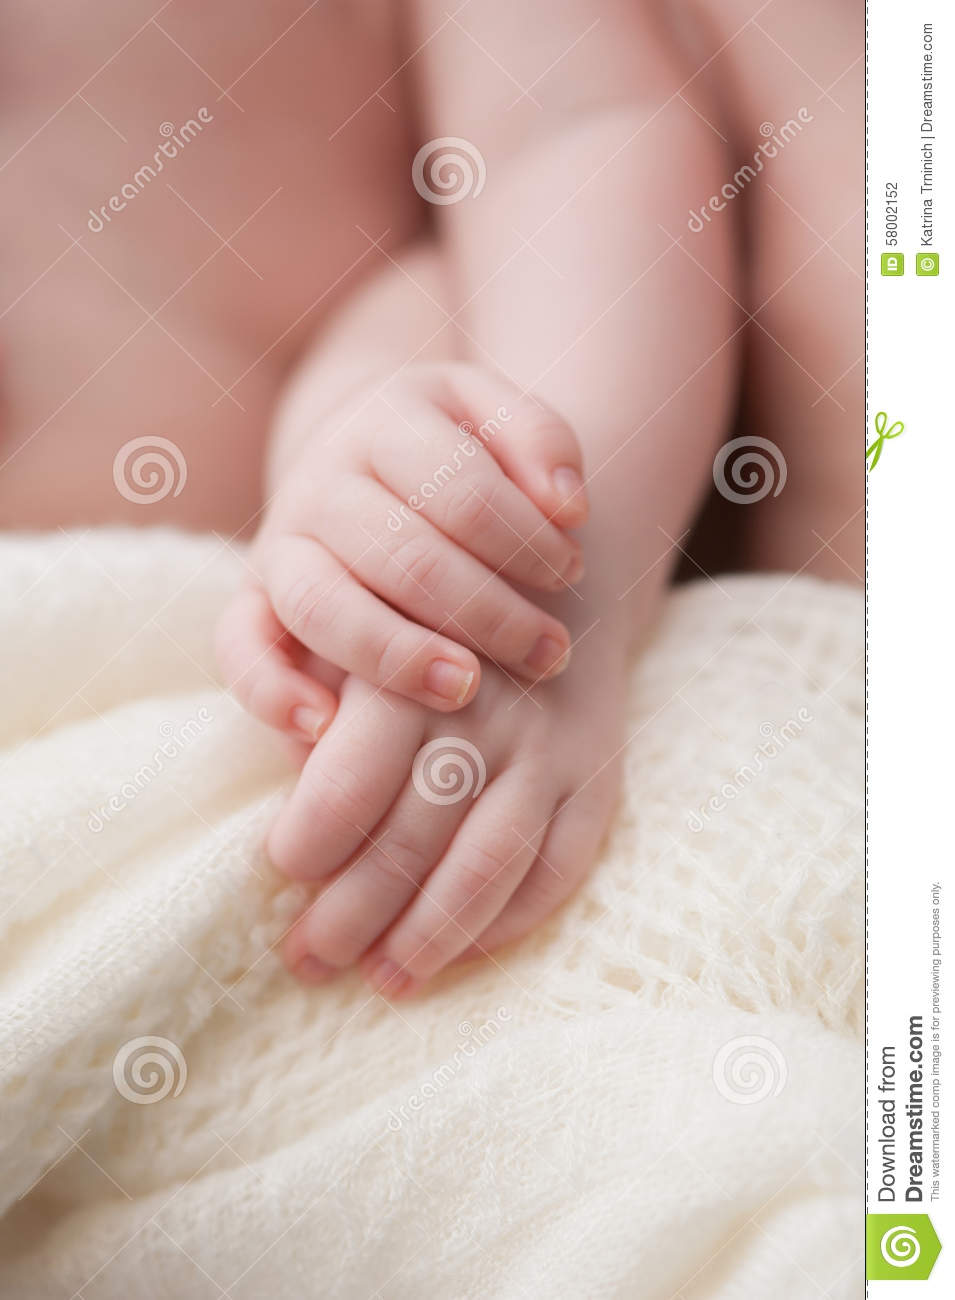 Twin Baby Girls Holding Hands Stock Photo Image Of